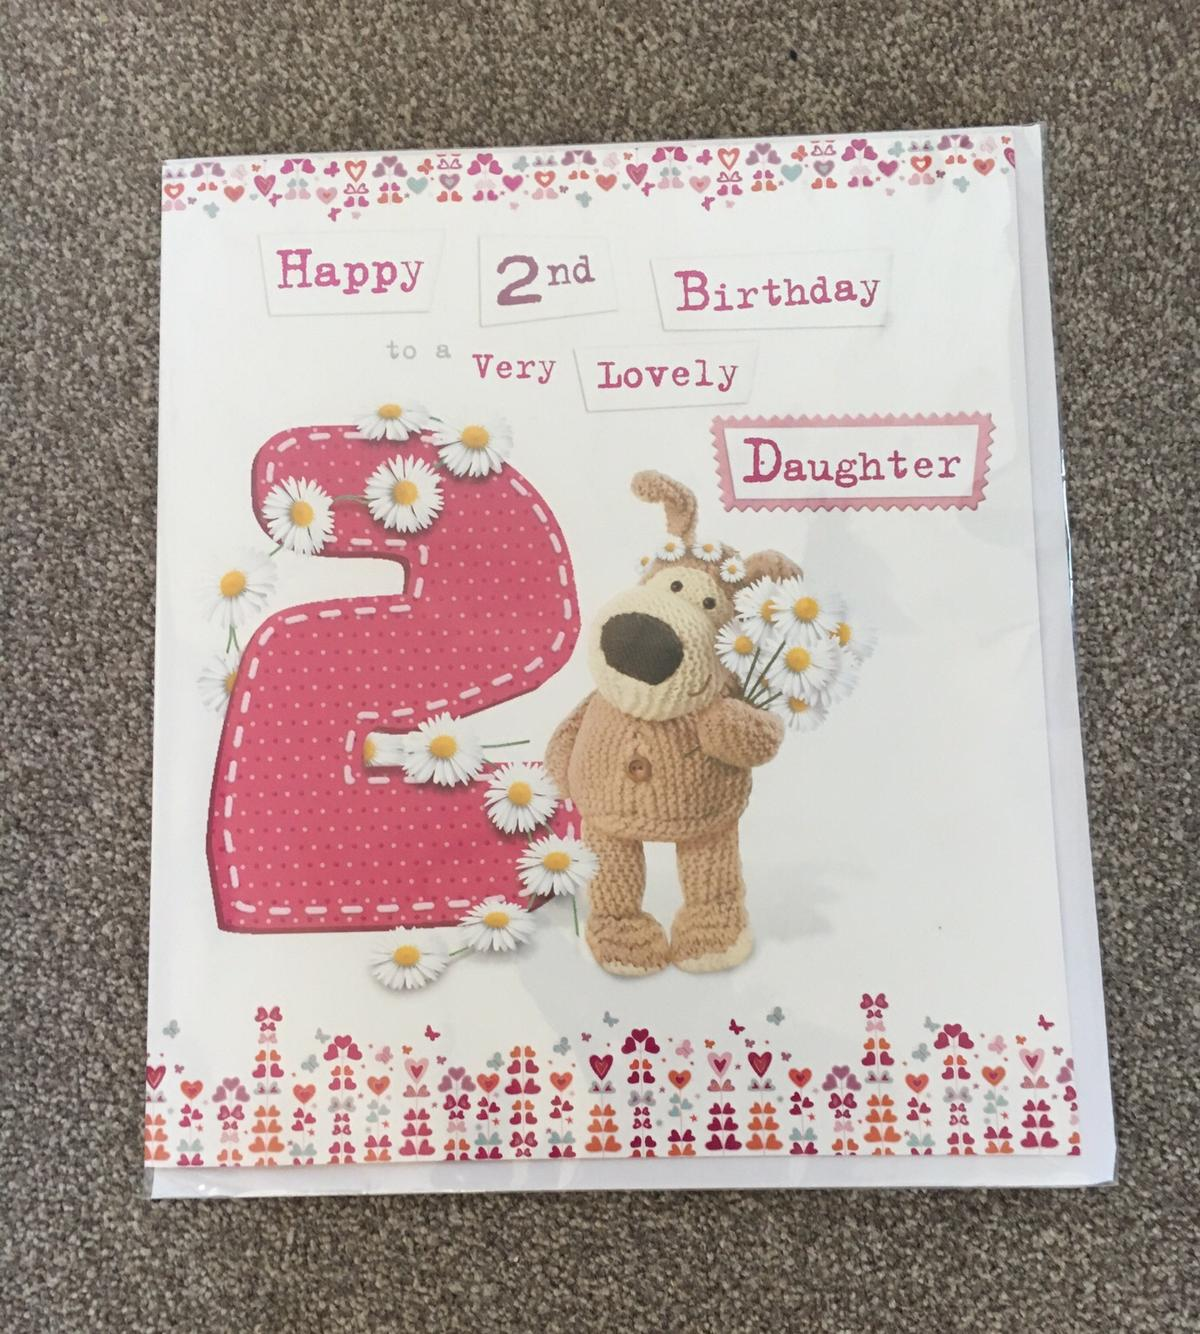 Wondrous Boofle 2Nd Birthday Card Daughter In B97 Redditch For 1 50 For Funny Birthday Cards Online Inifodamsfinfo